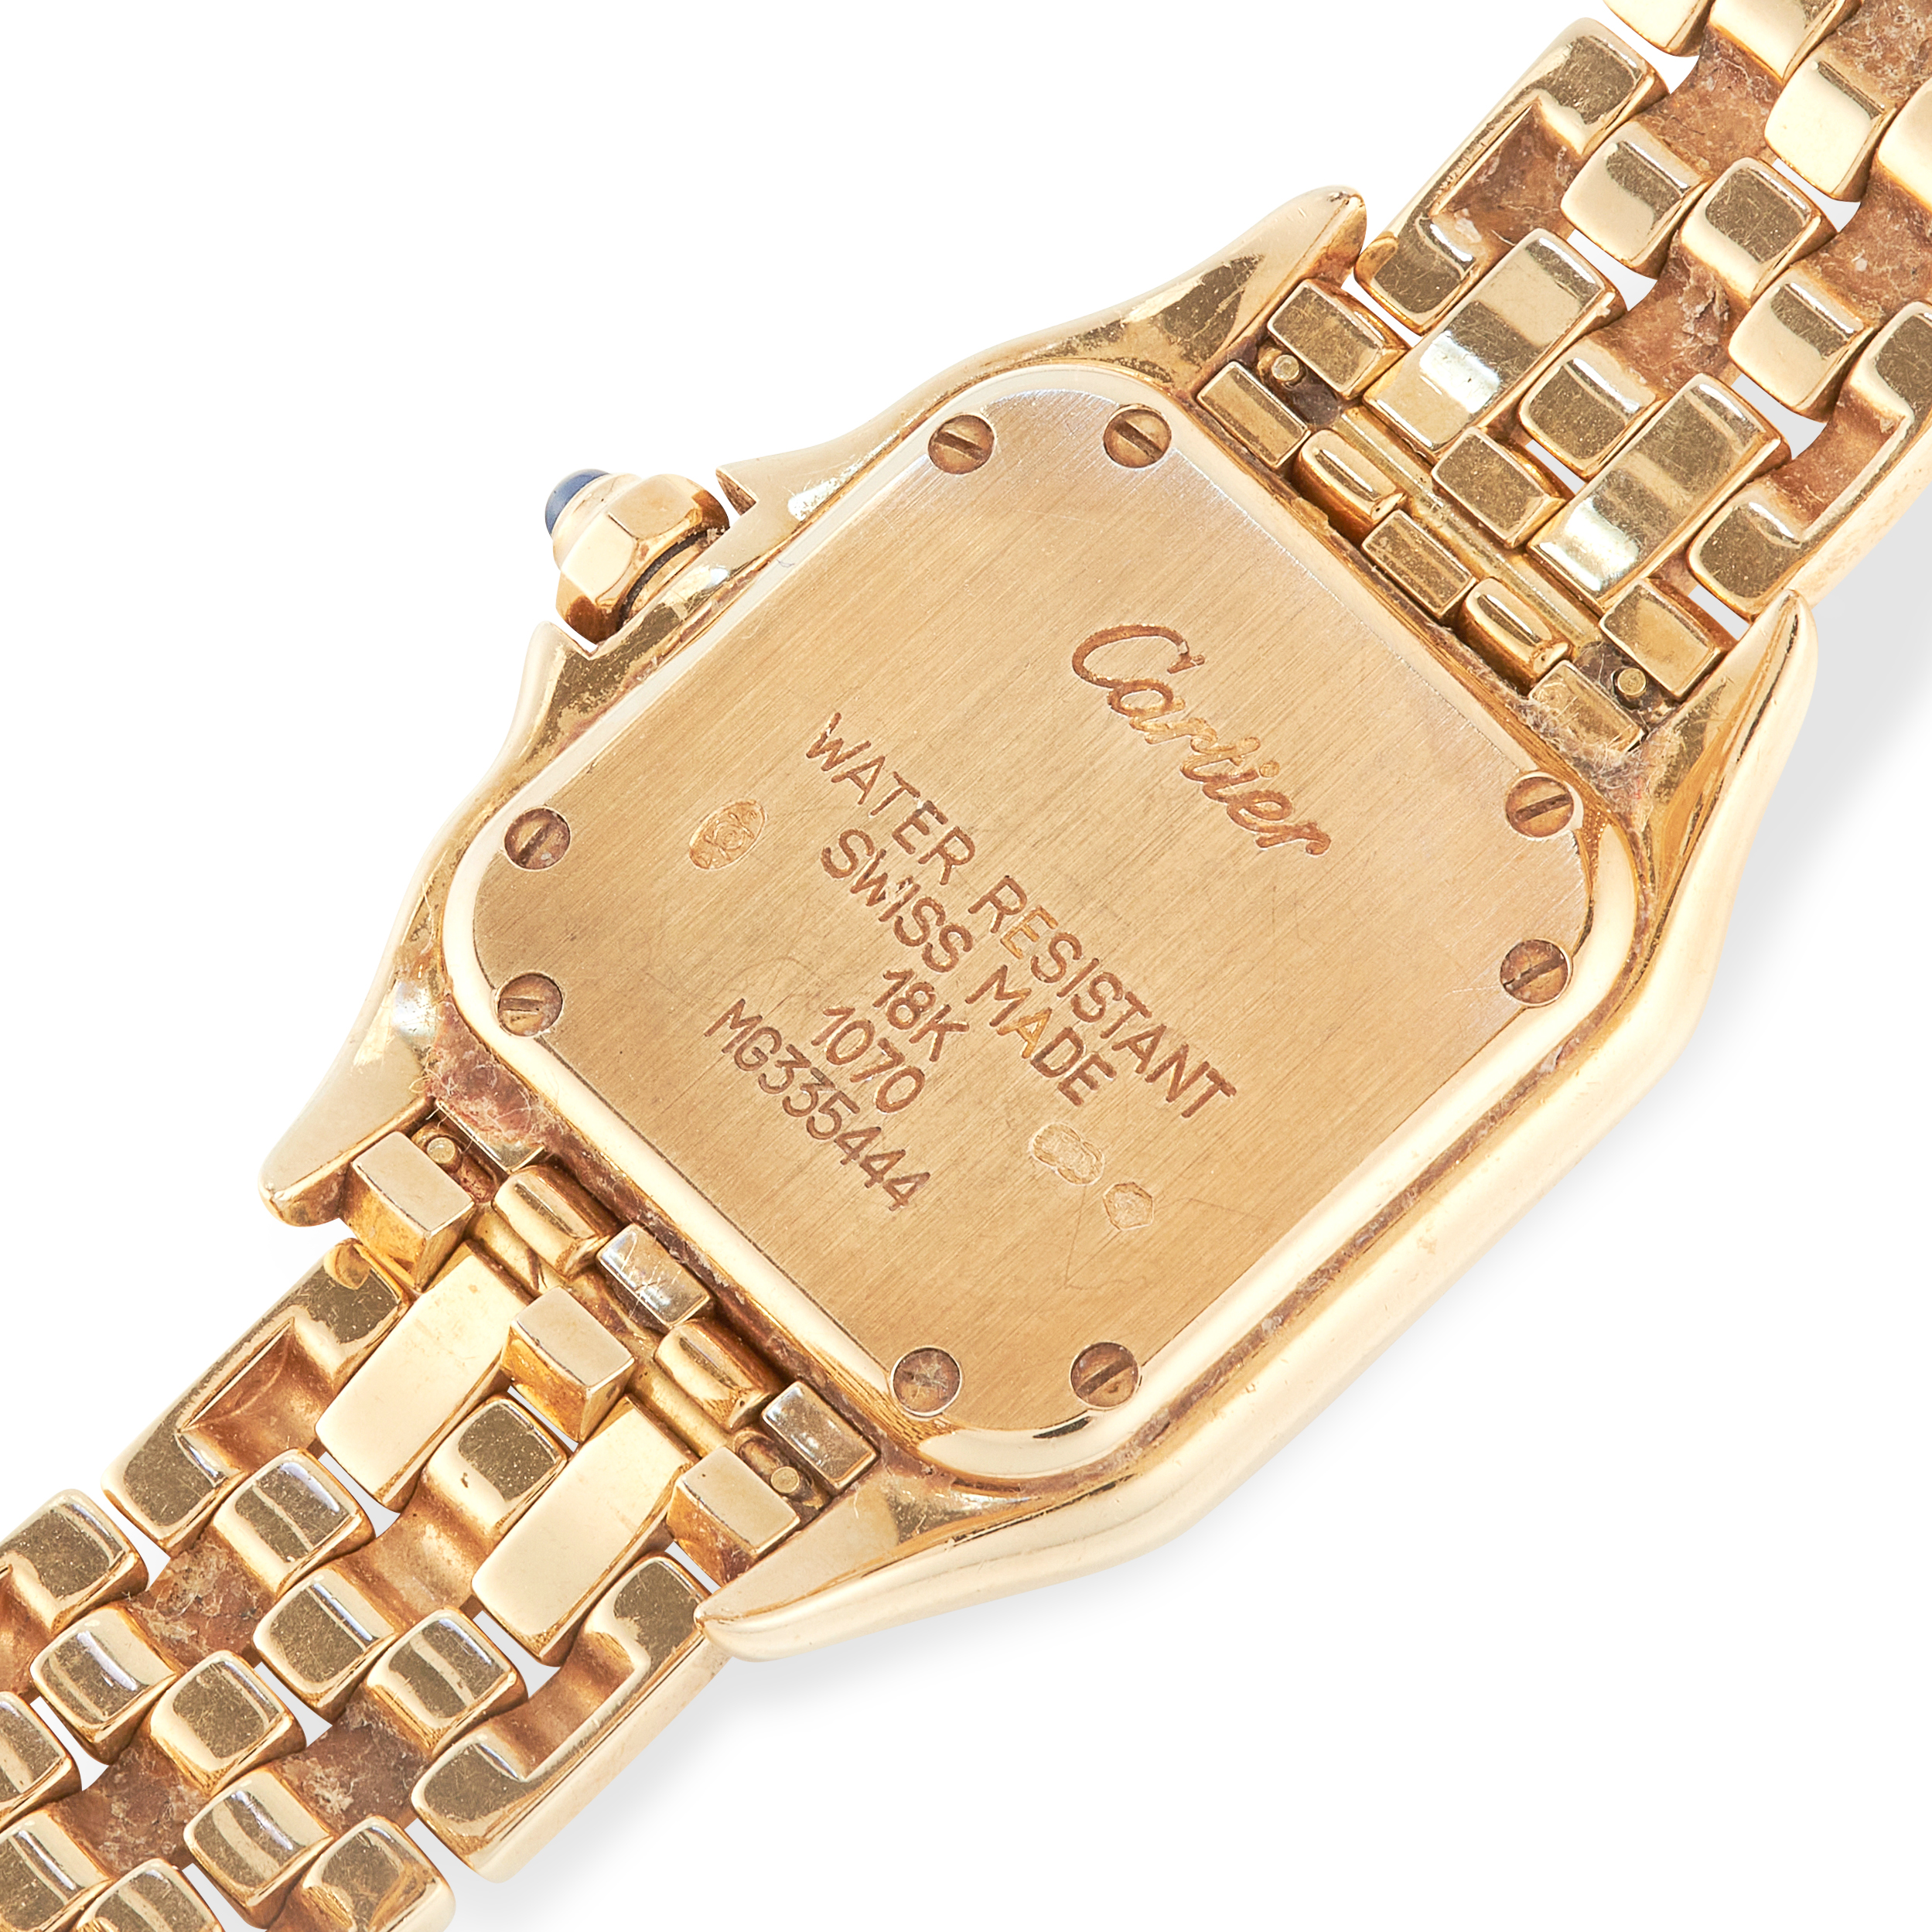 A LADIES PANTHERE DE CARTIER WRIST WATCH, CARTIER in 18ct yellow gold, the face with Roman numerals, - Image 3 of 3